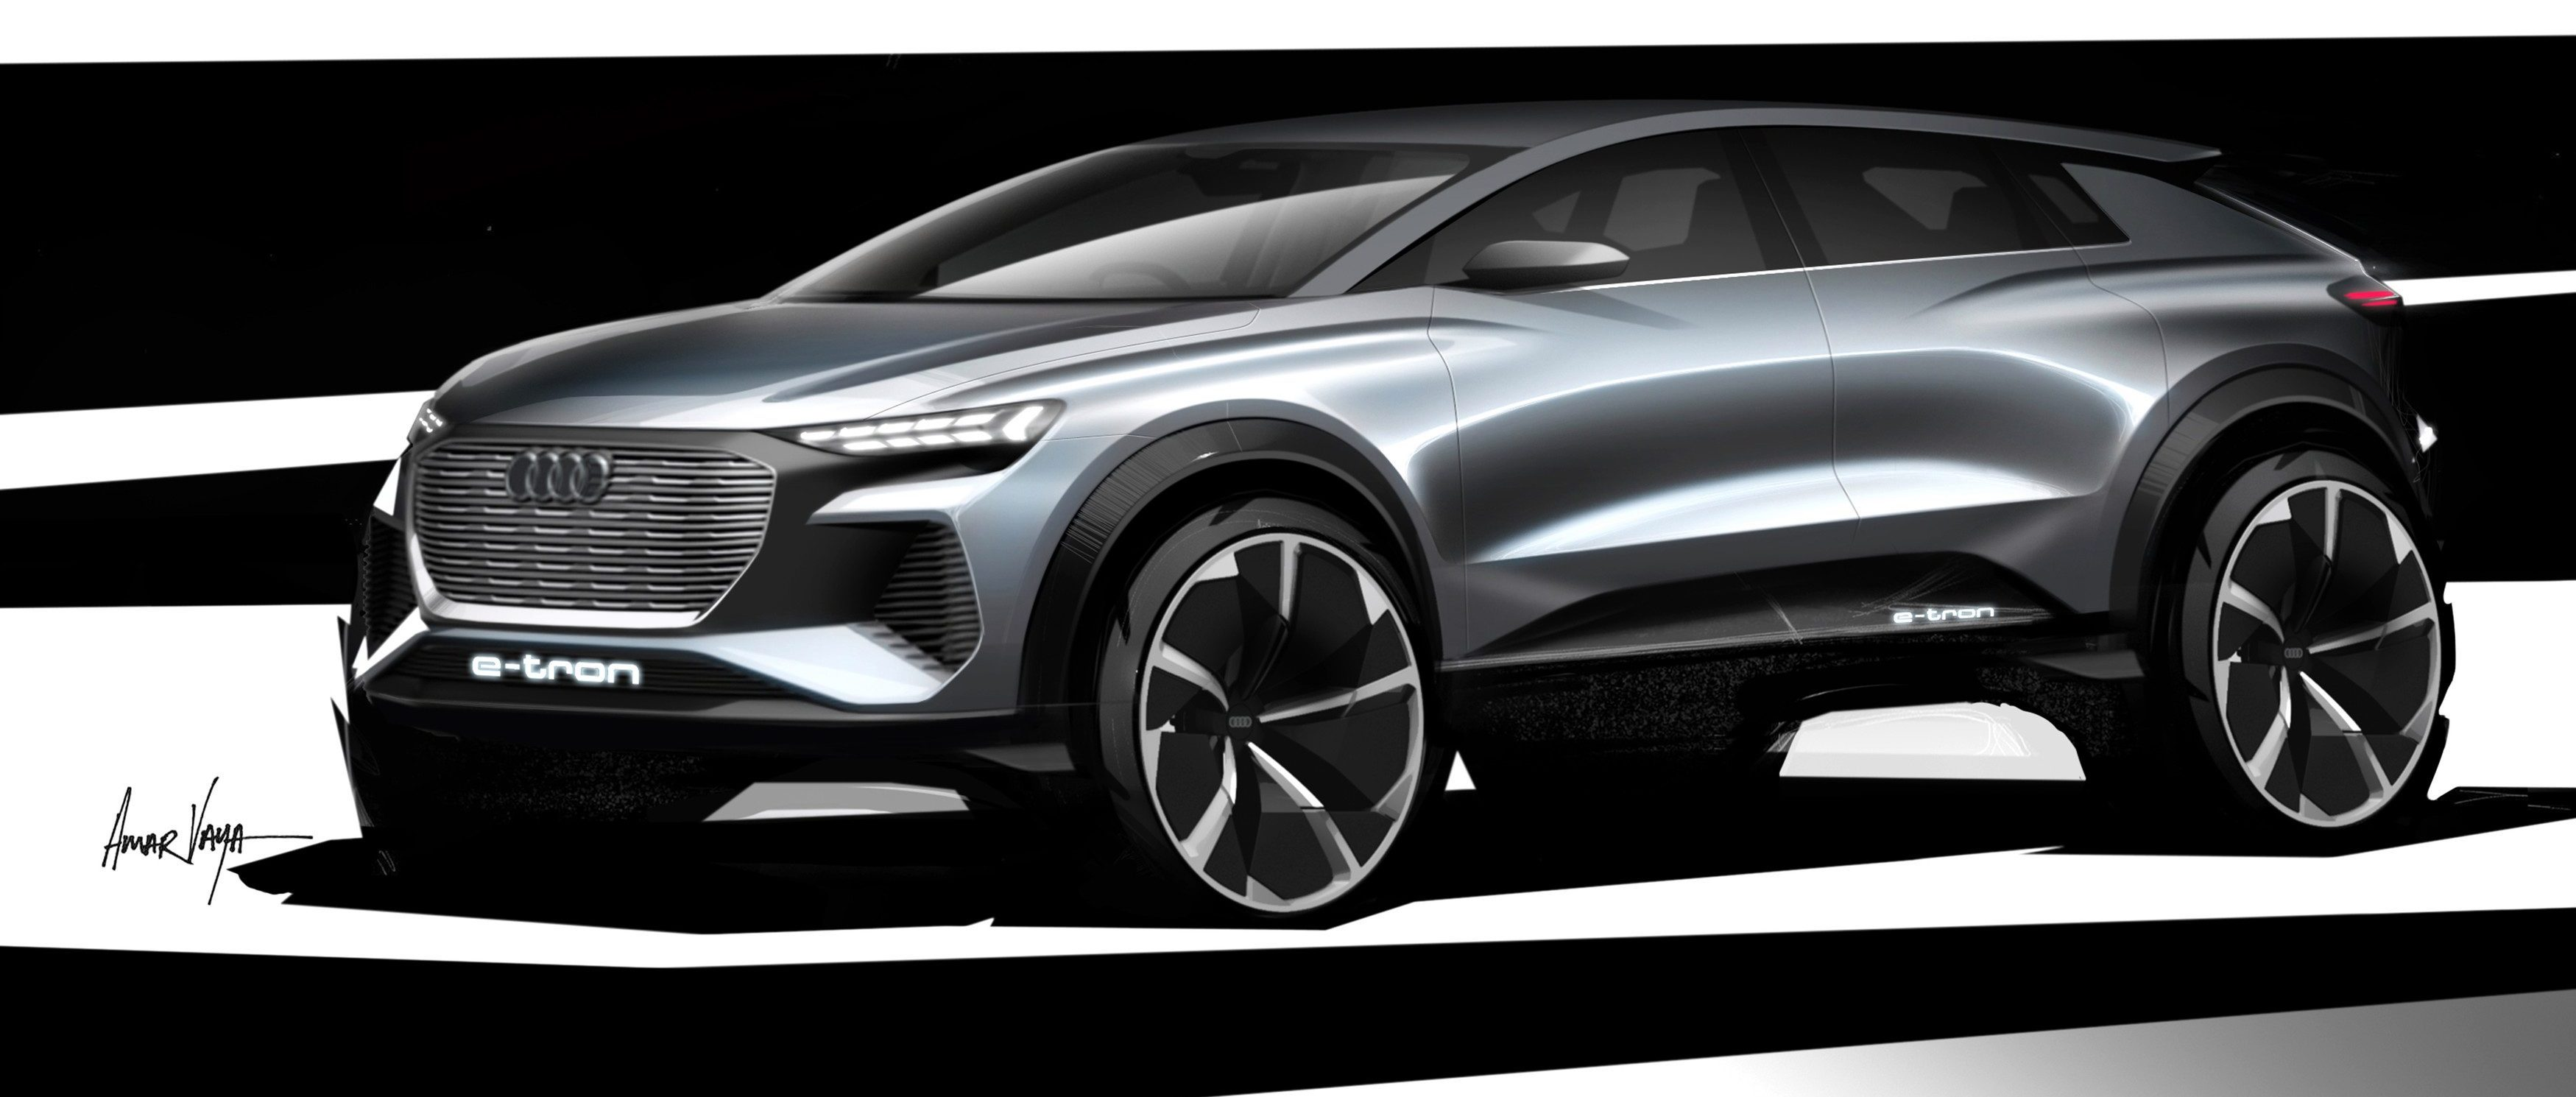 Audi unveils design of Q4 e-tron – a new all-electric compact SUV